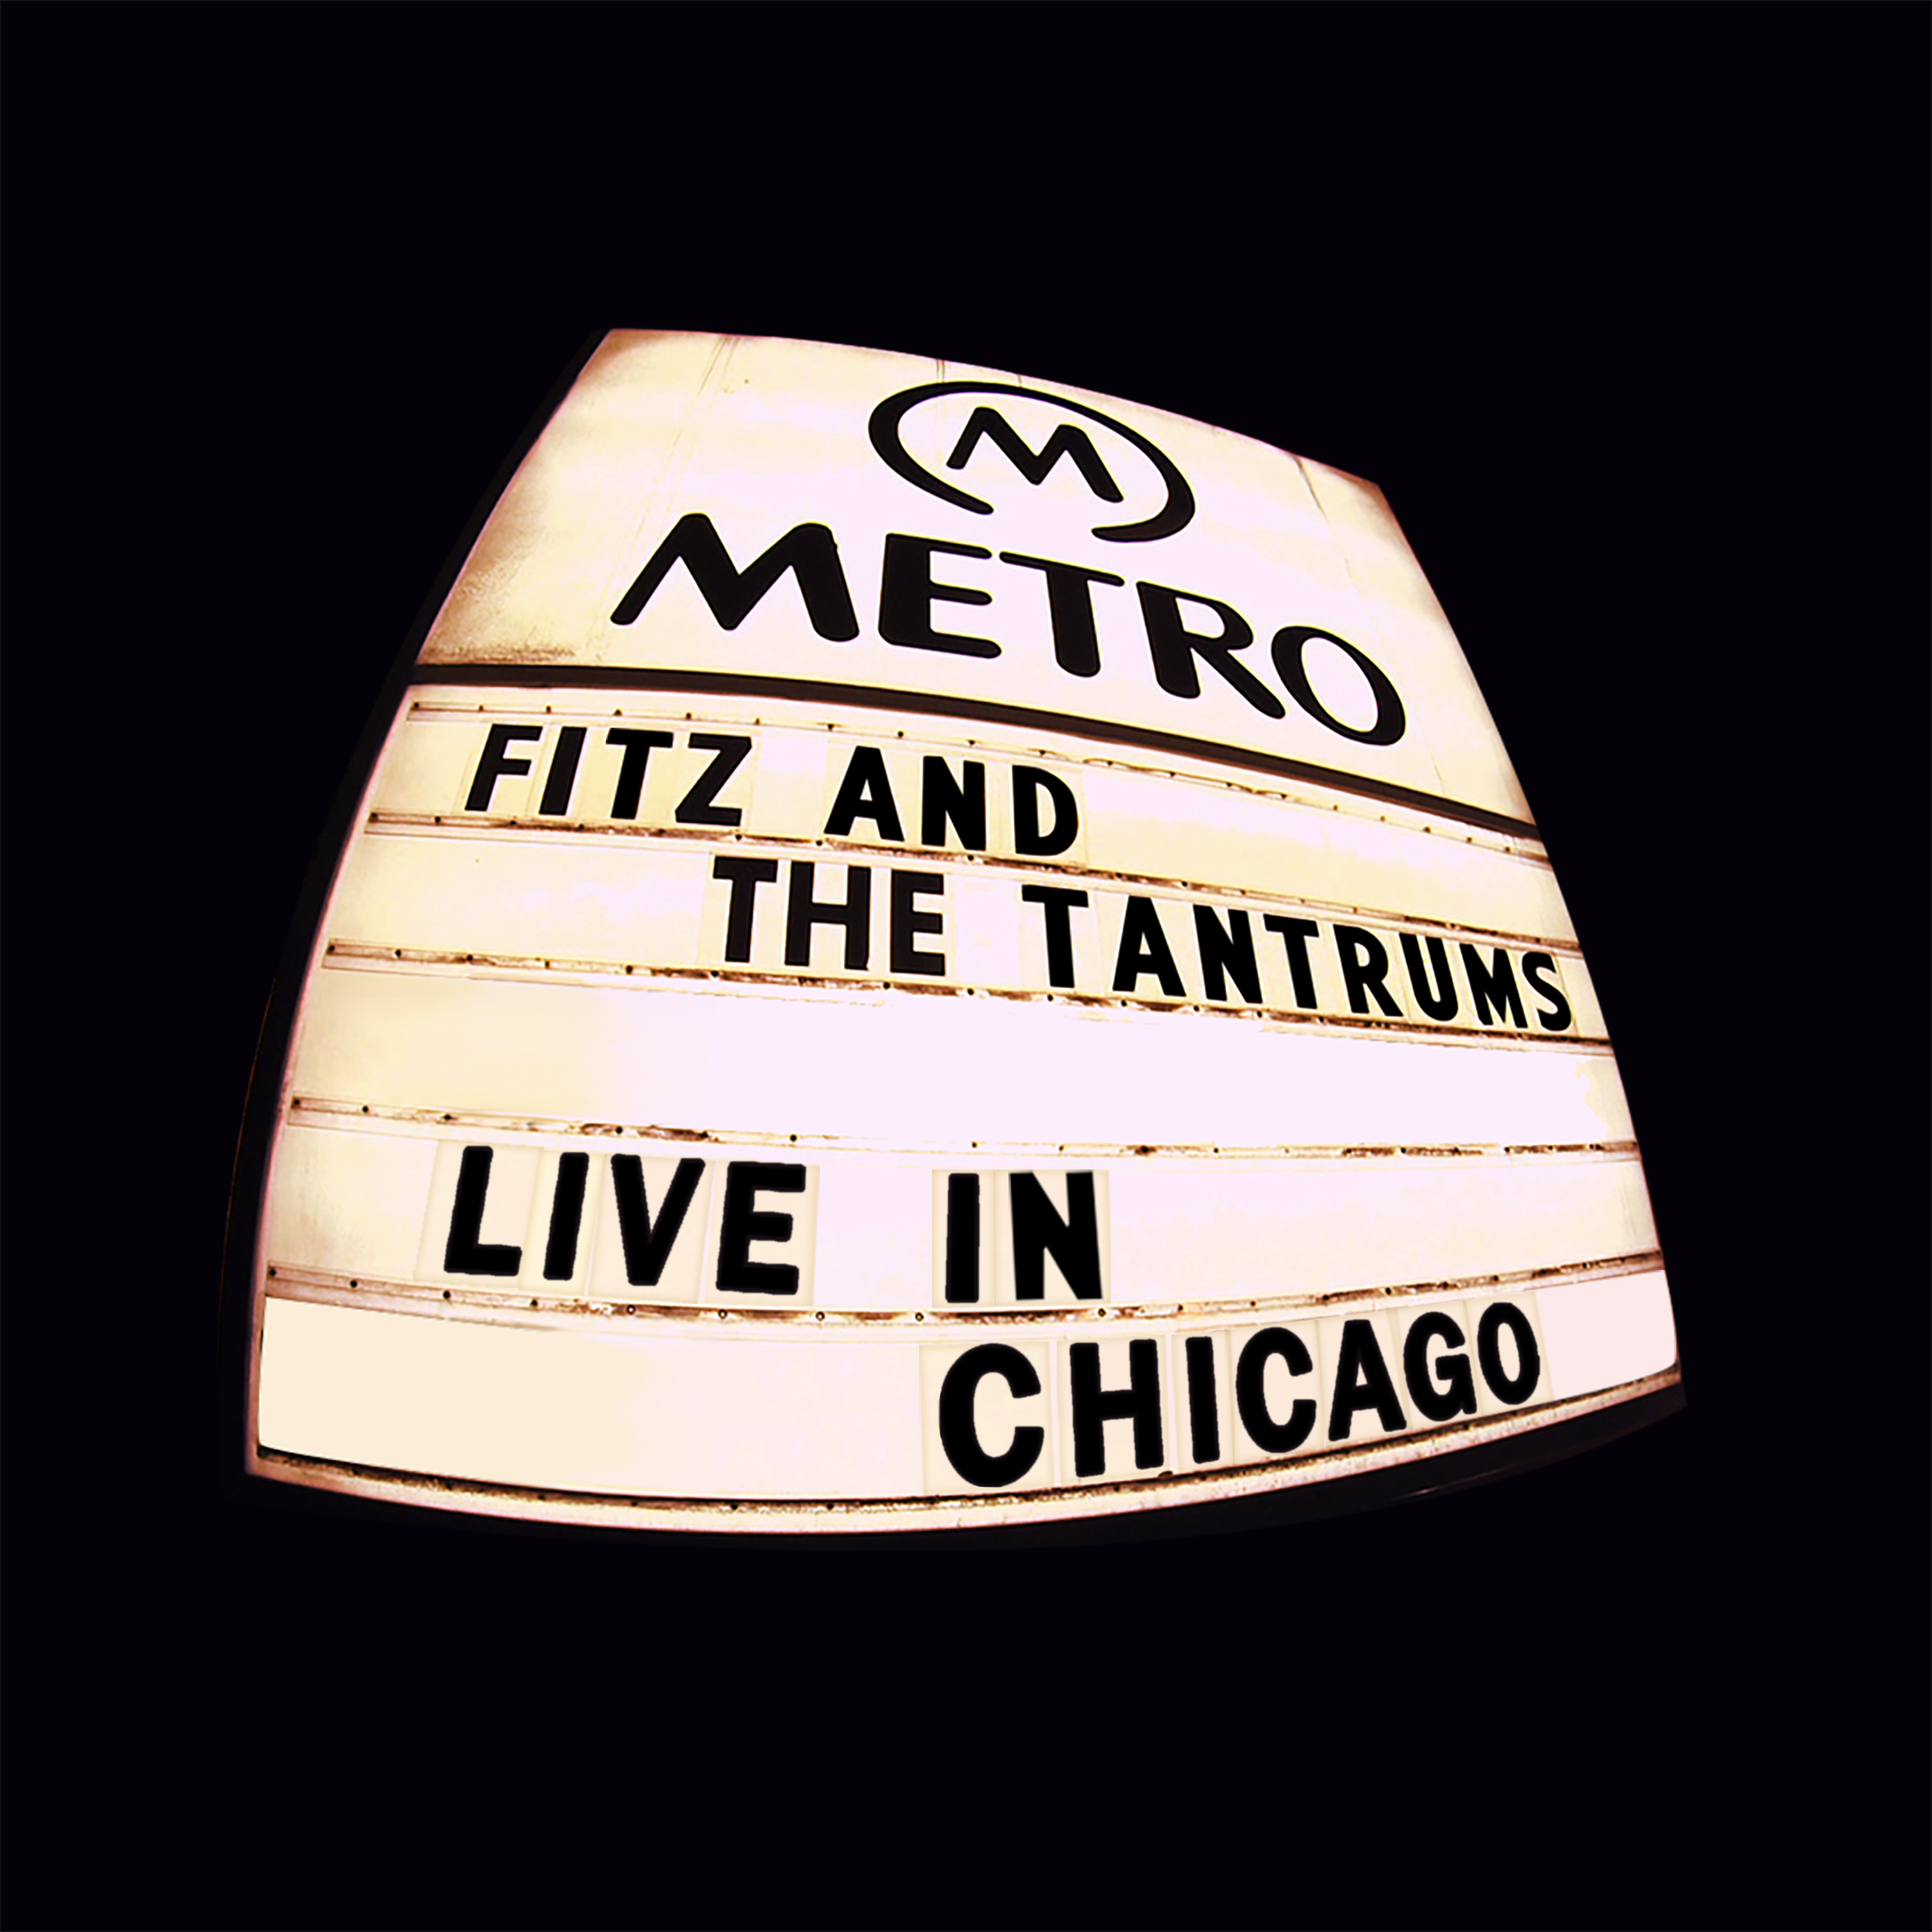 Fitz and The Tantrums - Live In Chicago - Digital